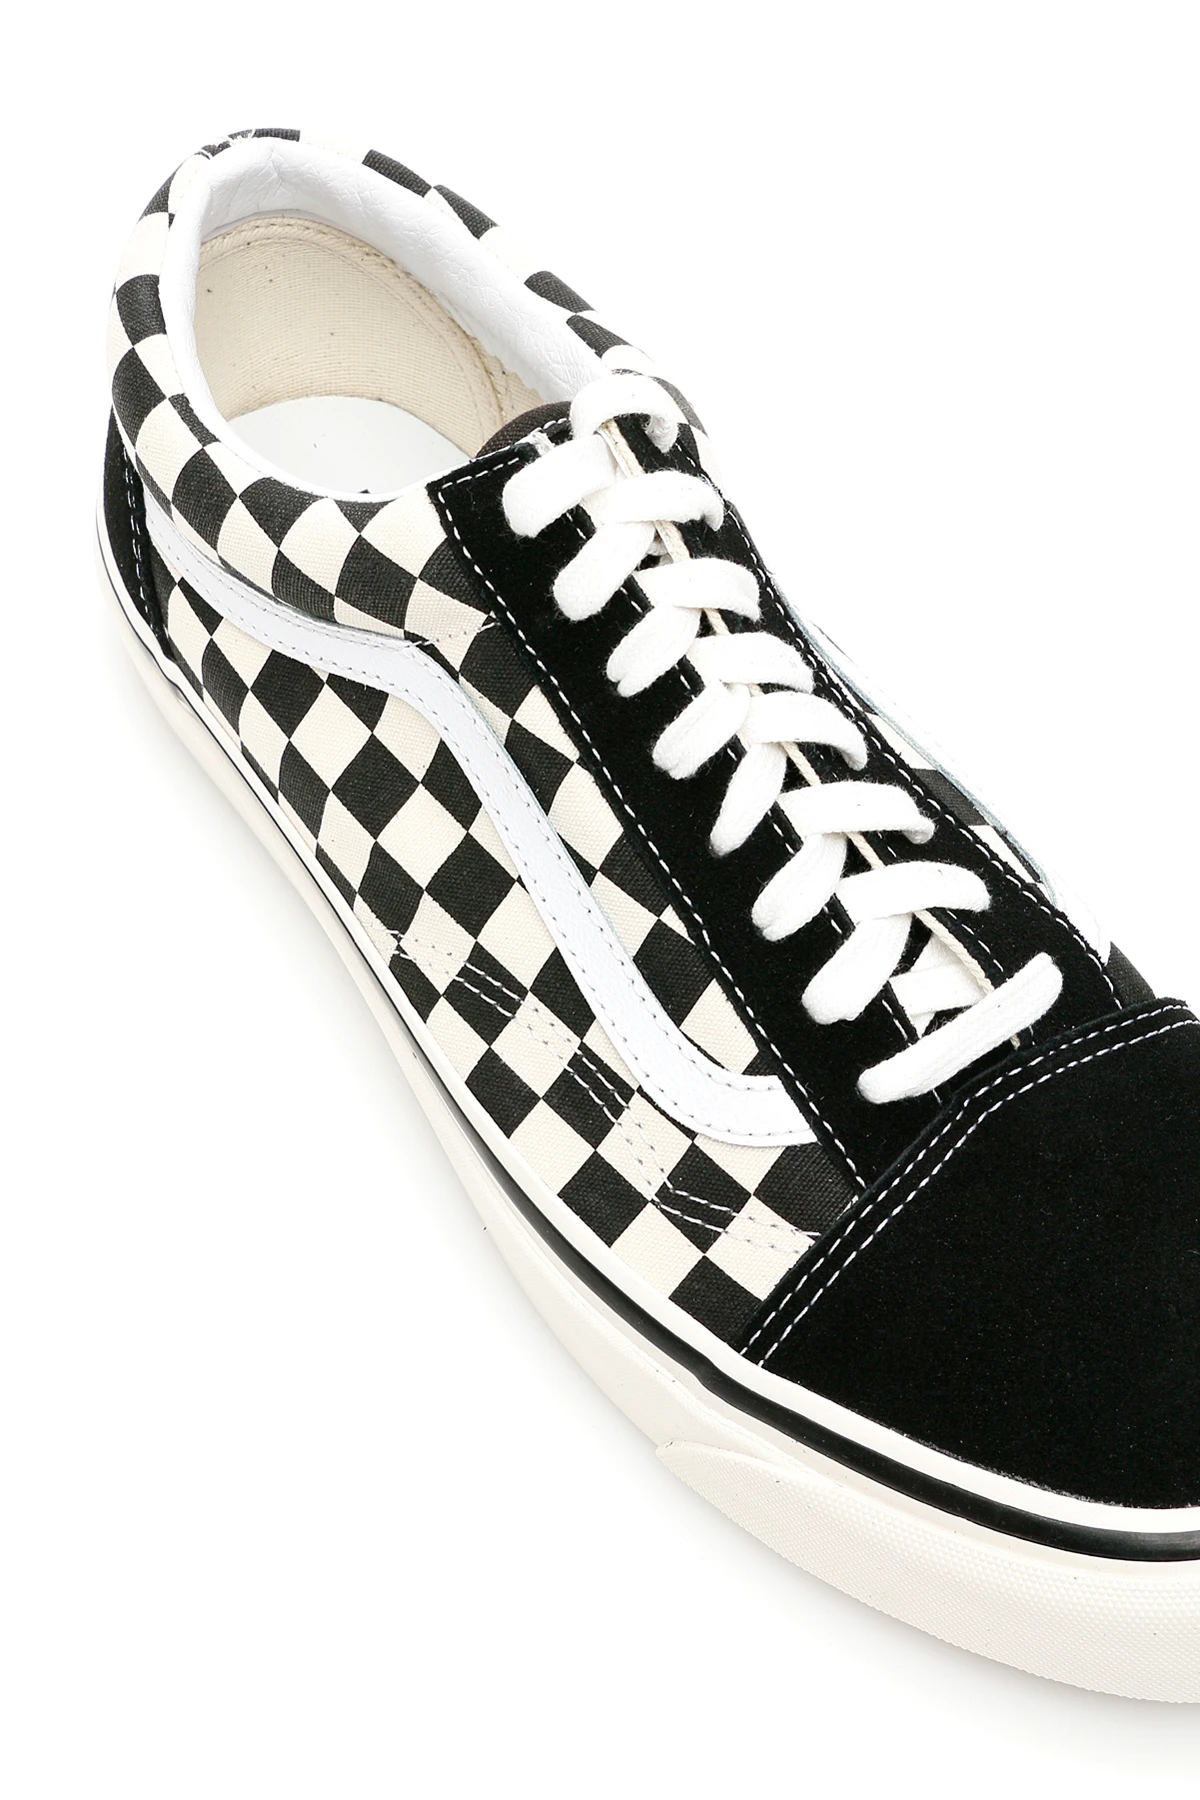 Details about NEW Vans old skool 36 dx check sneakers VN0A38G20AK1 Black Chck AUTHENTIC NWT